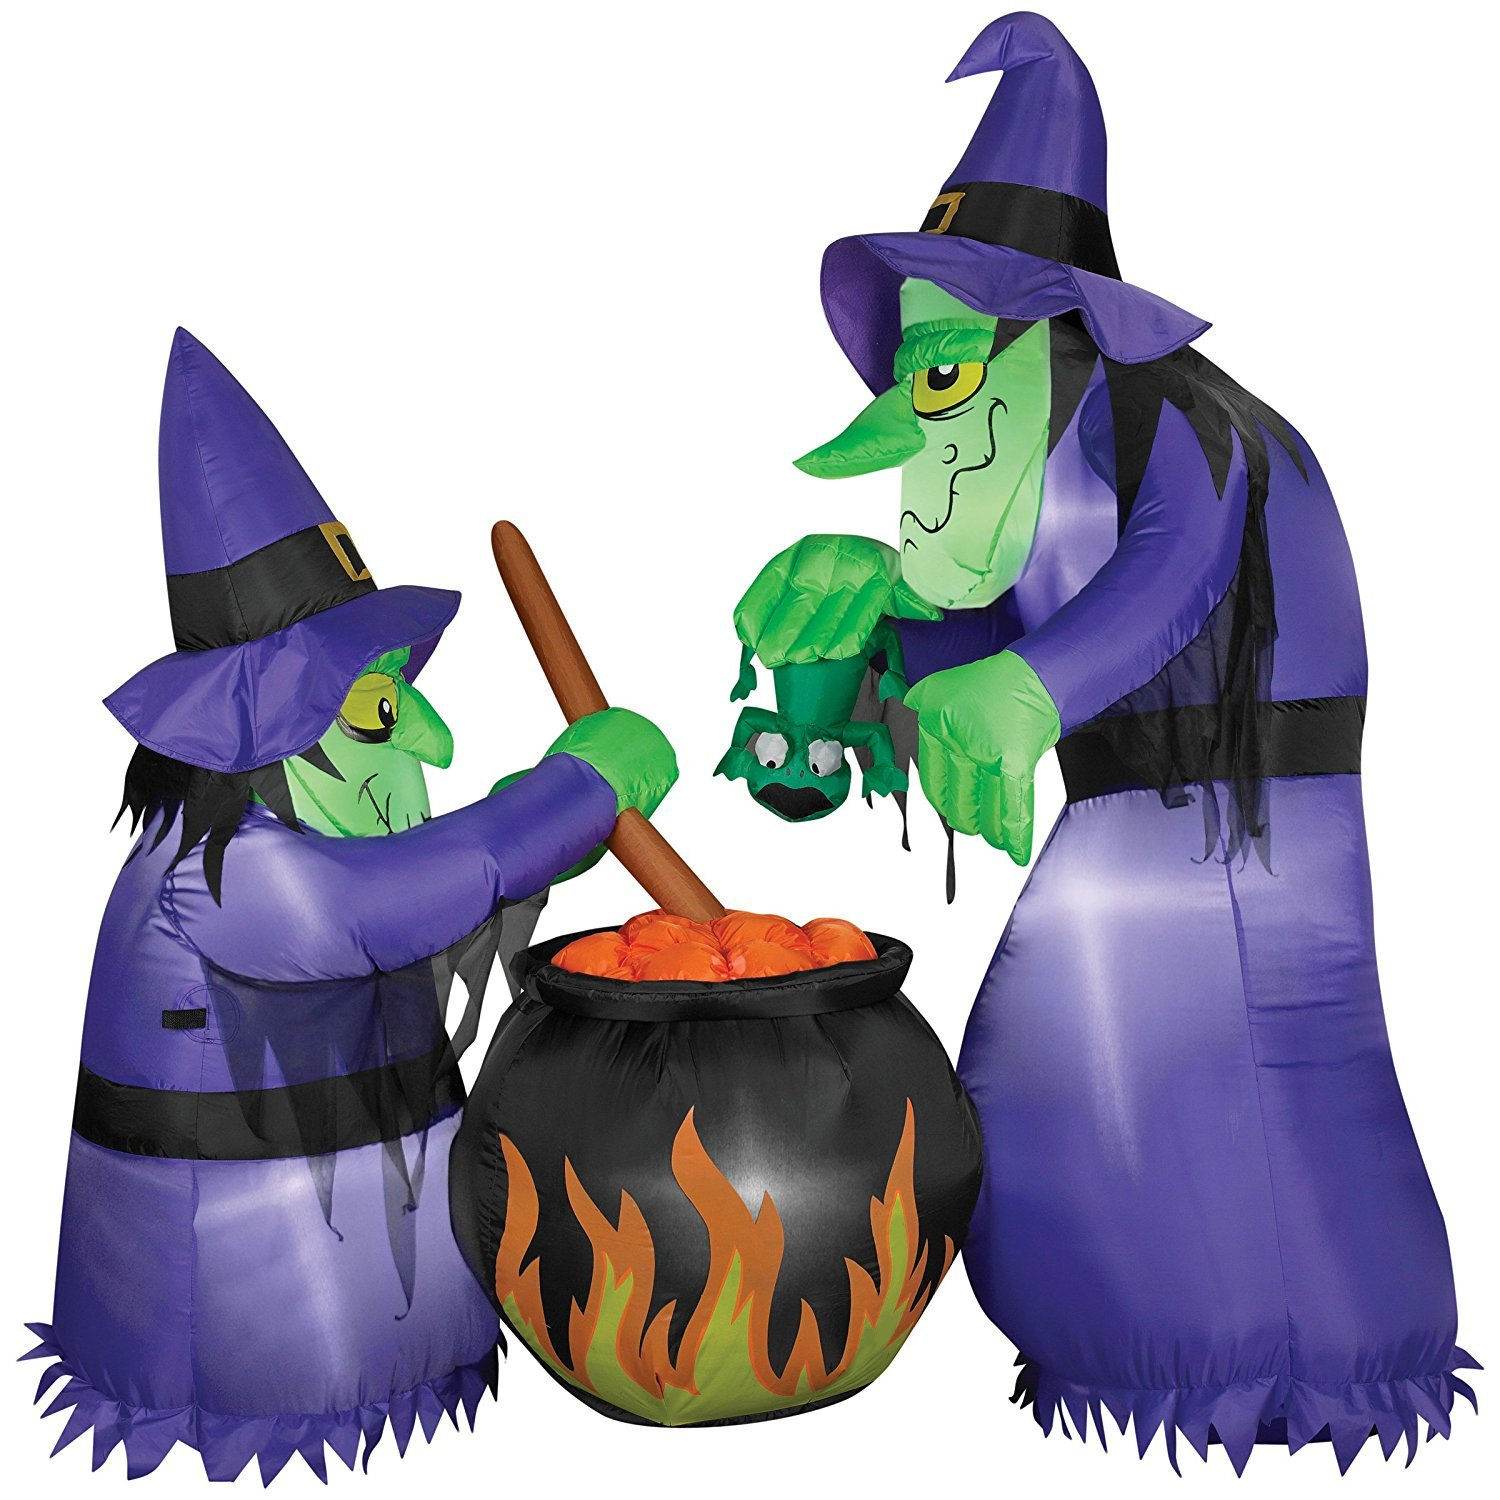 1500x1500 6 Foot Lighted Airblown Halloween Inflatable Witches With Cauldron